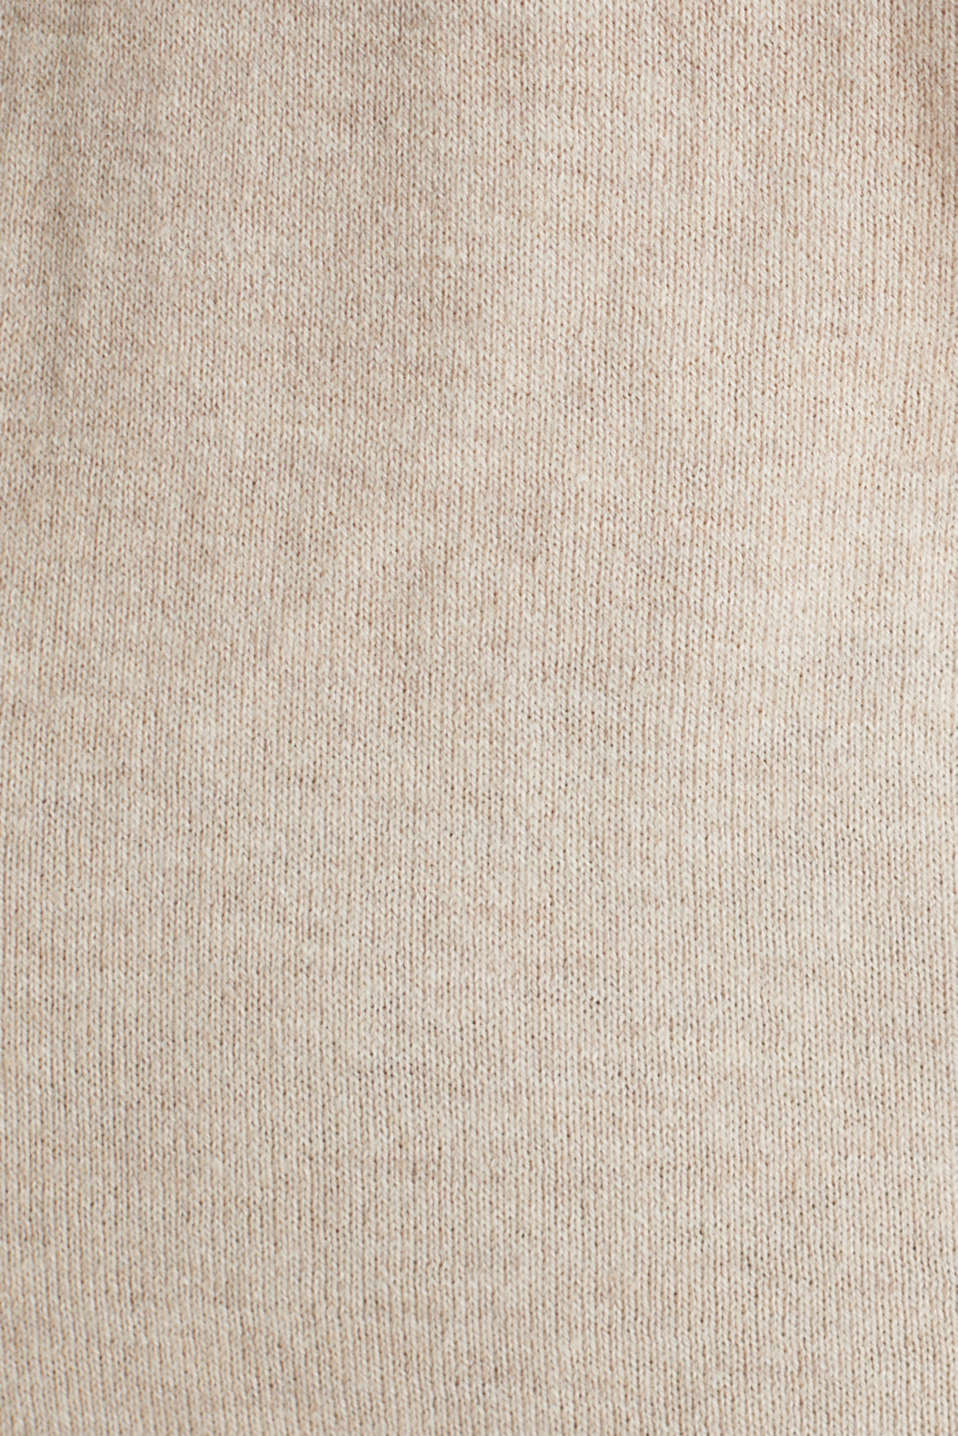 With silk: Jumper with a polo collar, SAND 5, detail image number 4